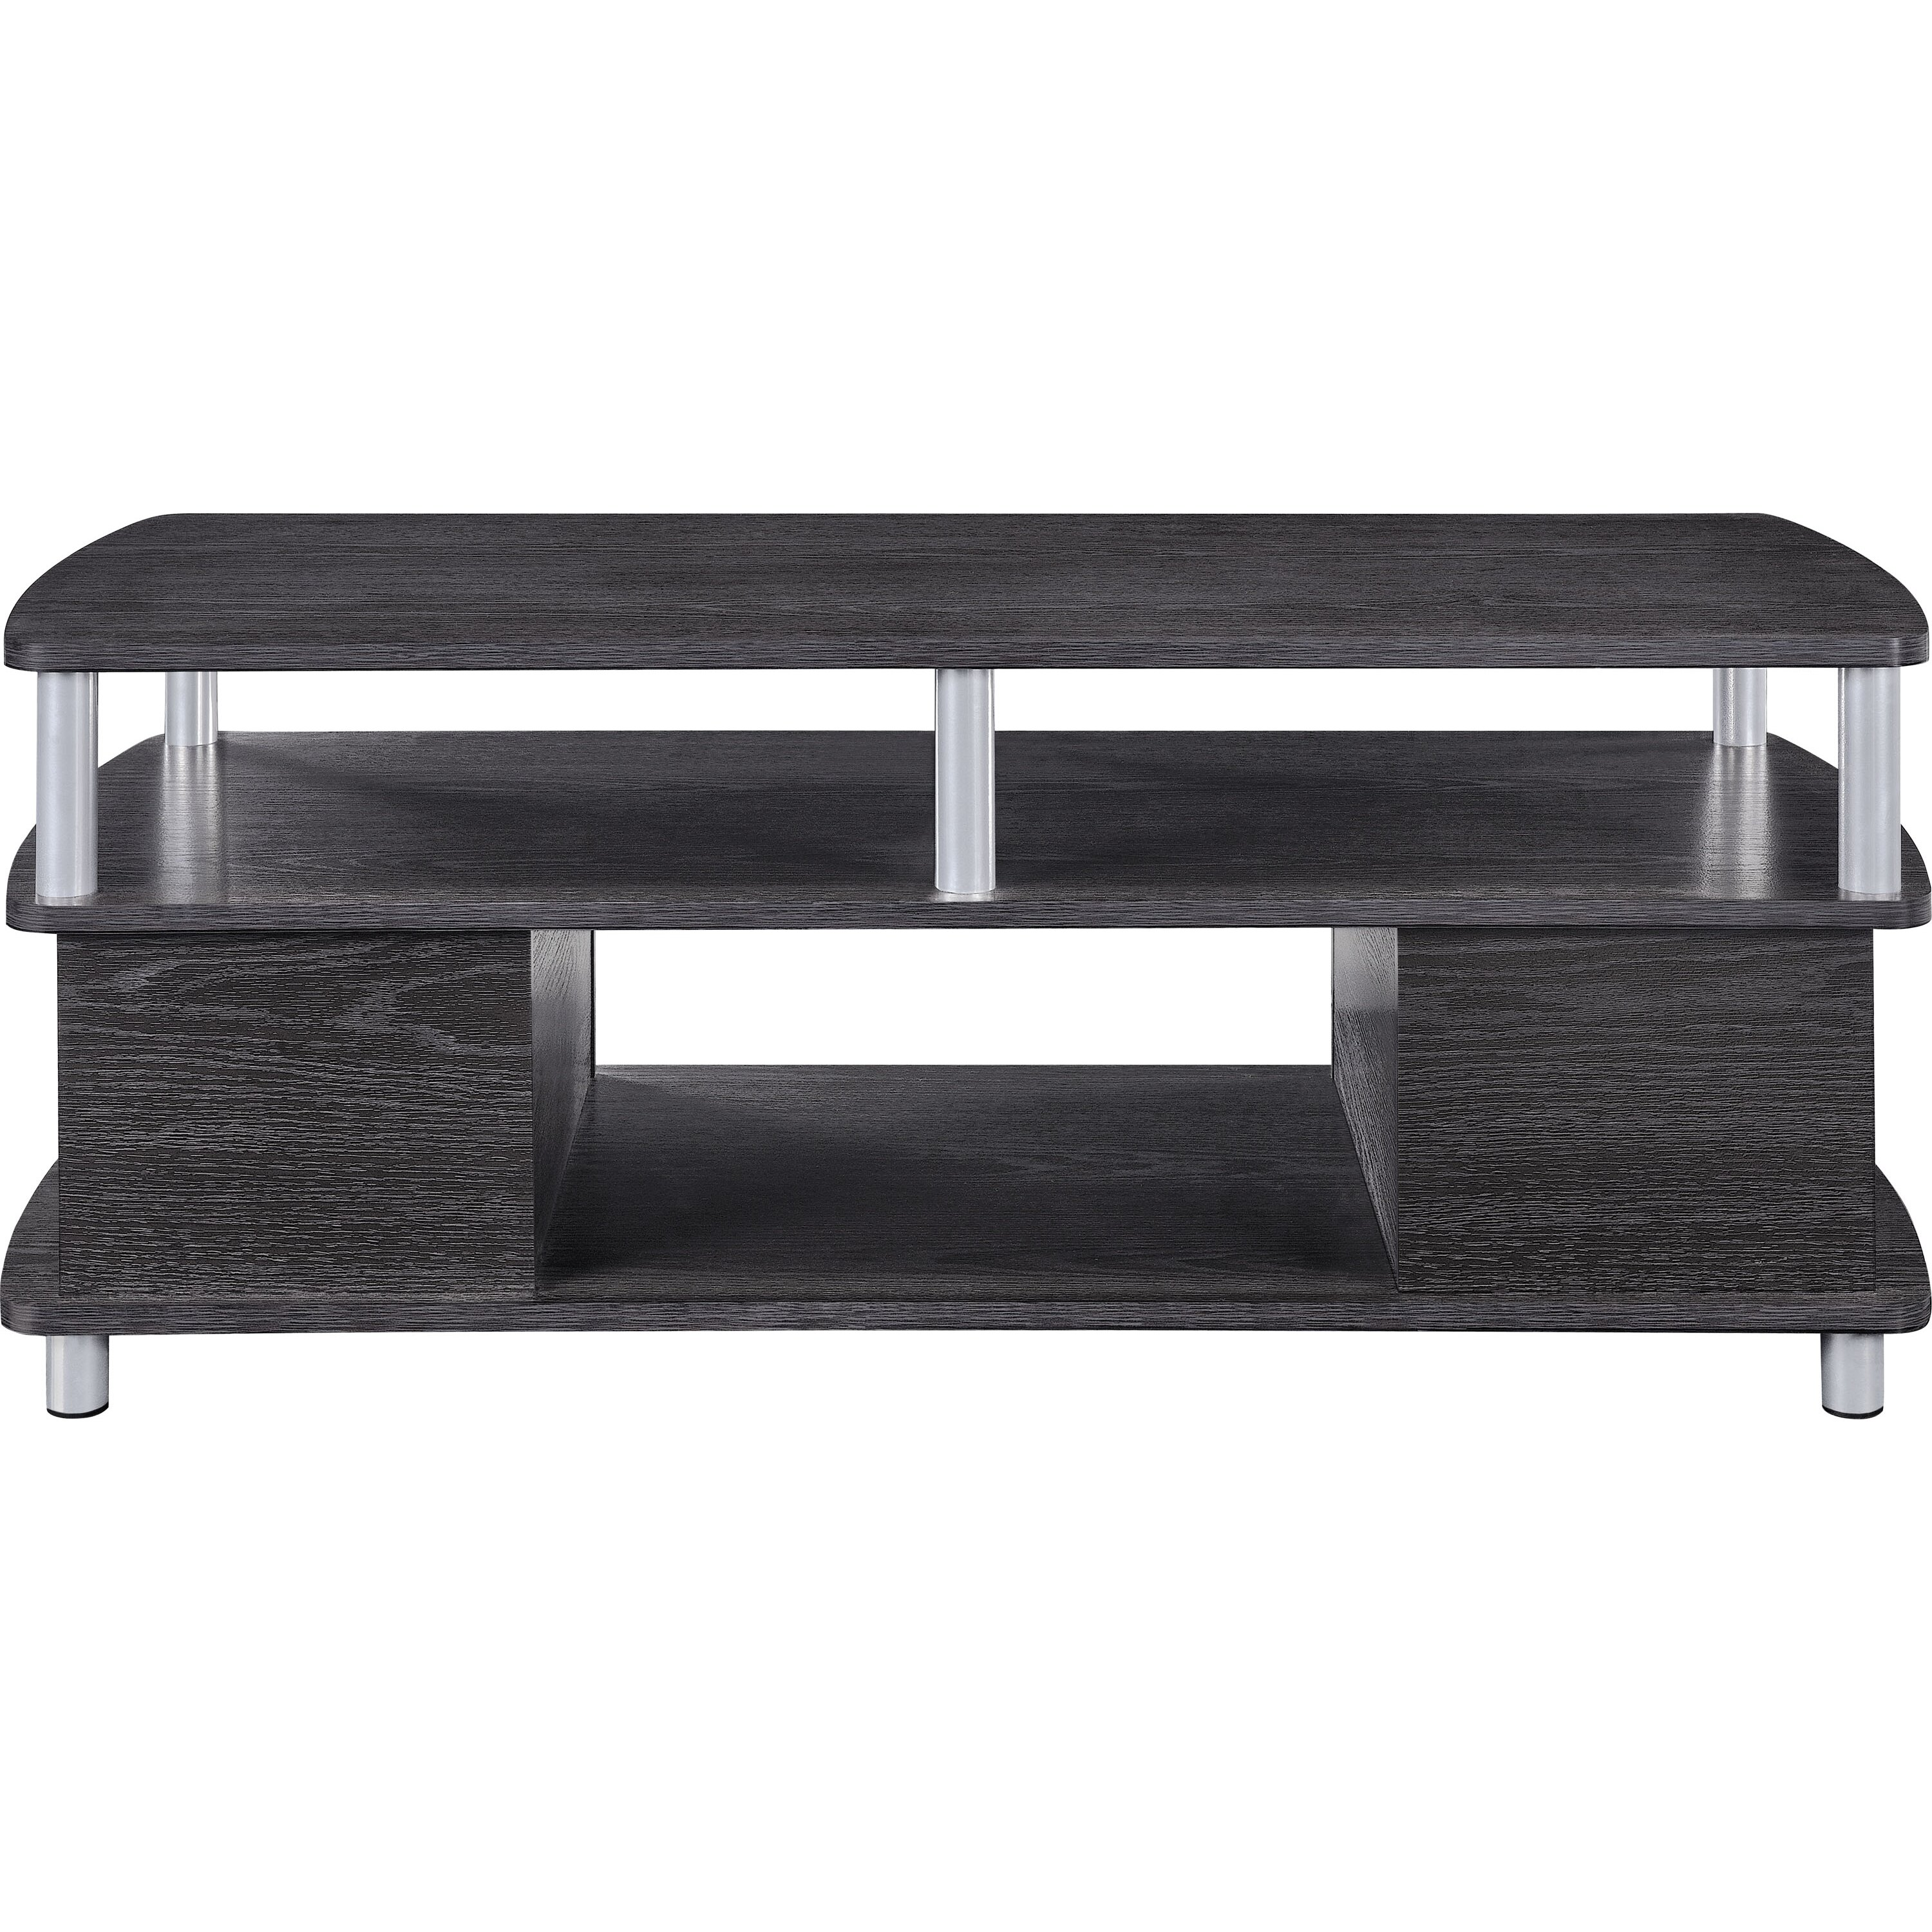 Zipcode design simone coffee table reviews for Solidworks design table zoom